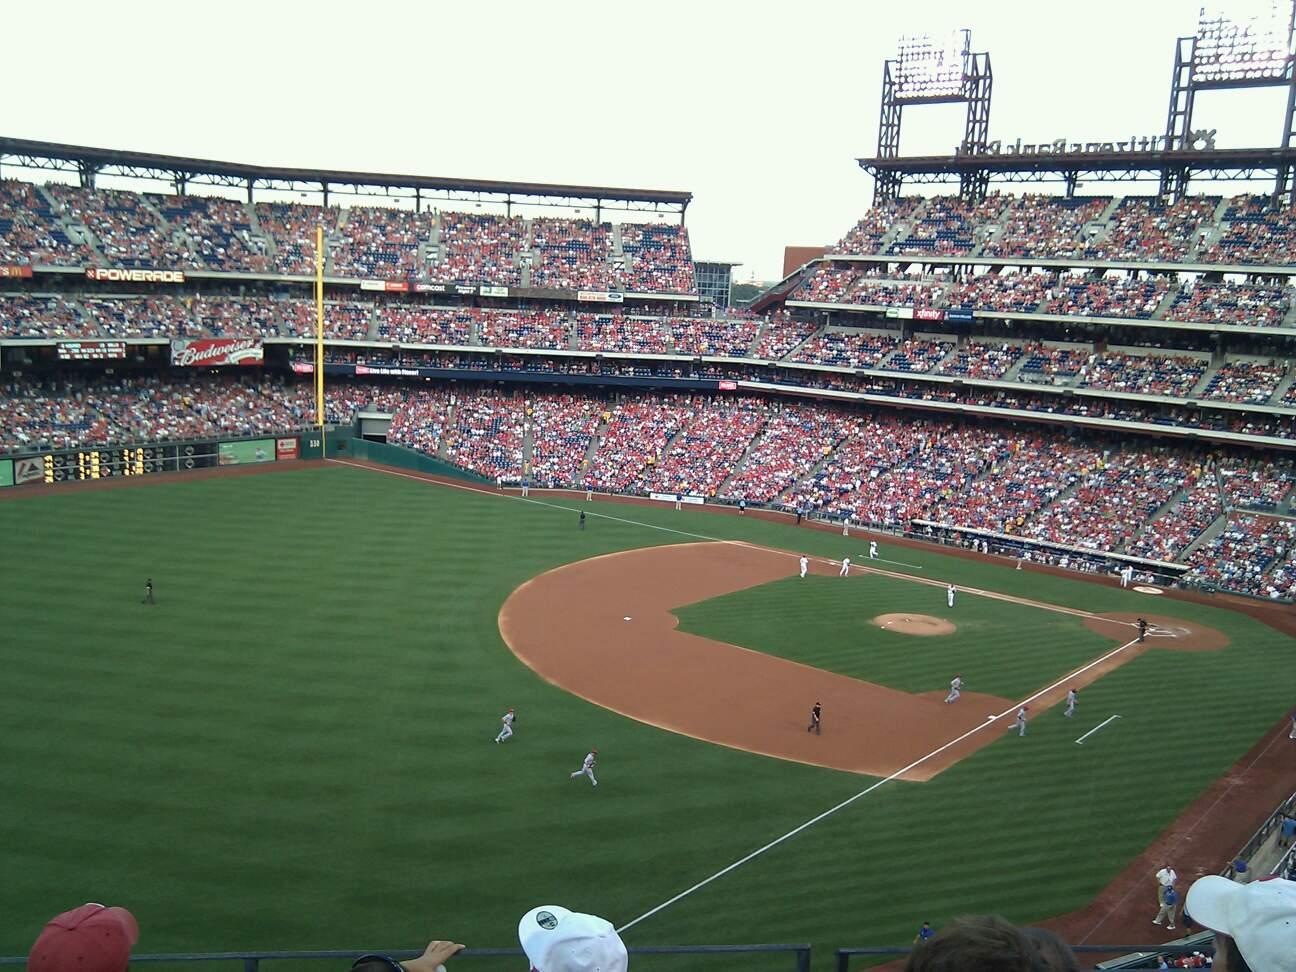 Citizens Bank Park Section 332 Row 4 Seat 5